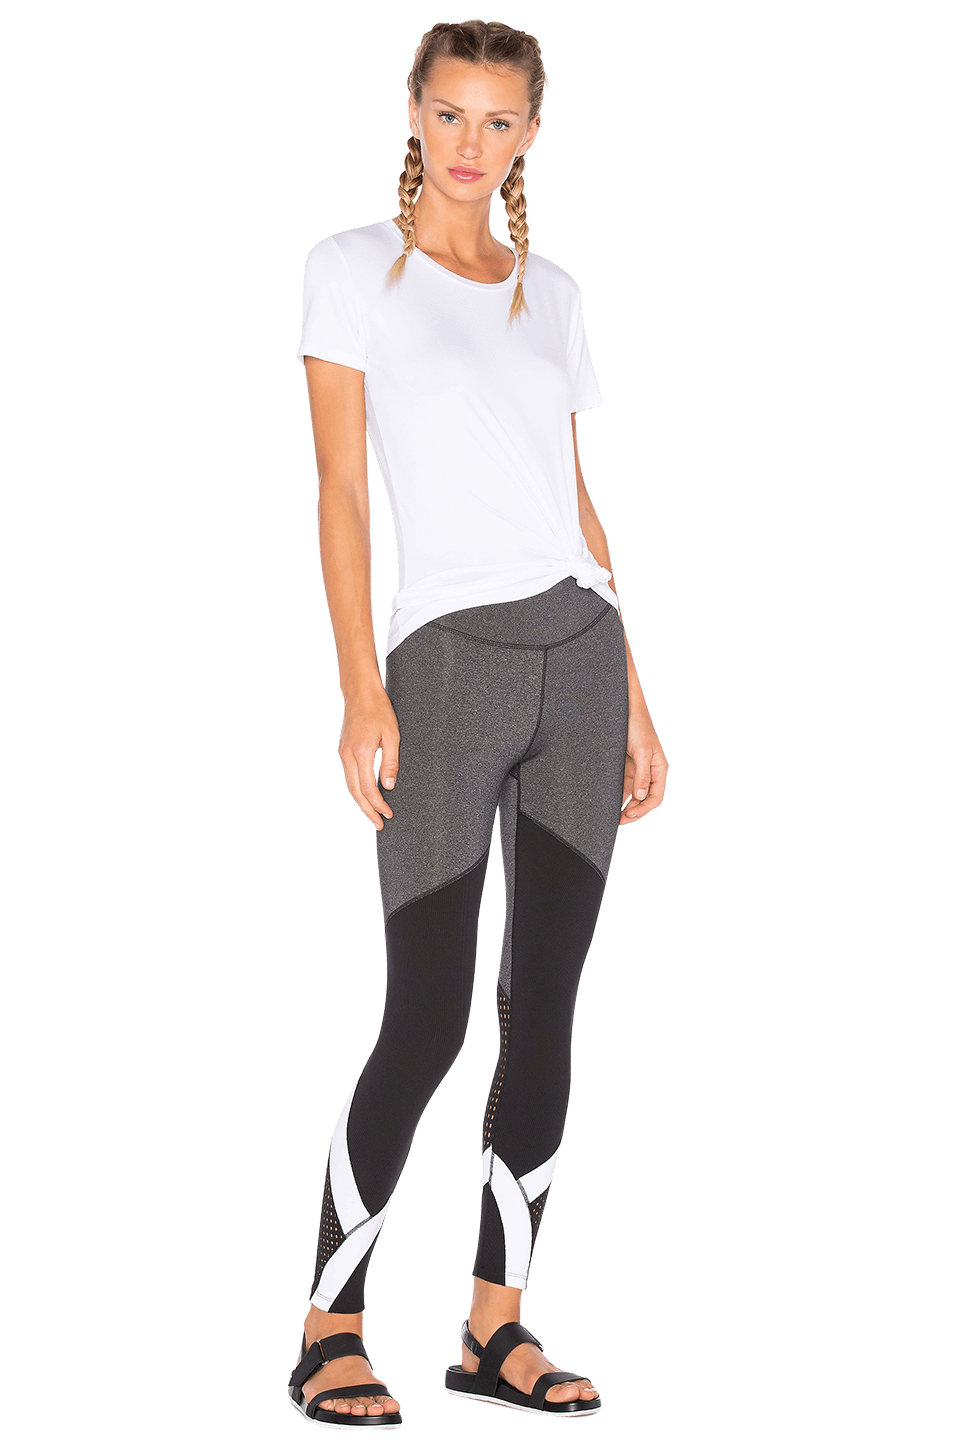 Our activewear on sale is regularly updated to ensure that we offer a discount for customers on select items every now and then. Whether it's one of our tanks, sports bras, or leggings we have a selection of activewear on sale that is guaranteed to sell out quickly!